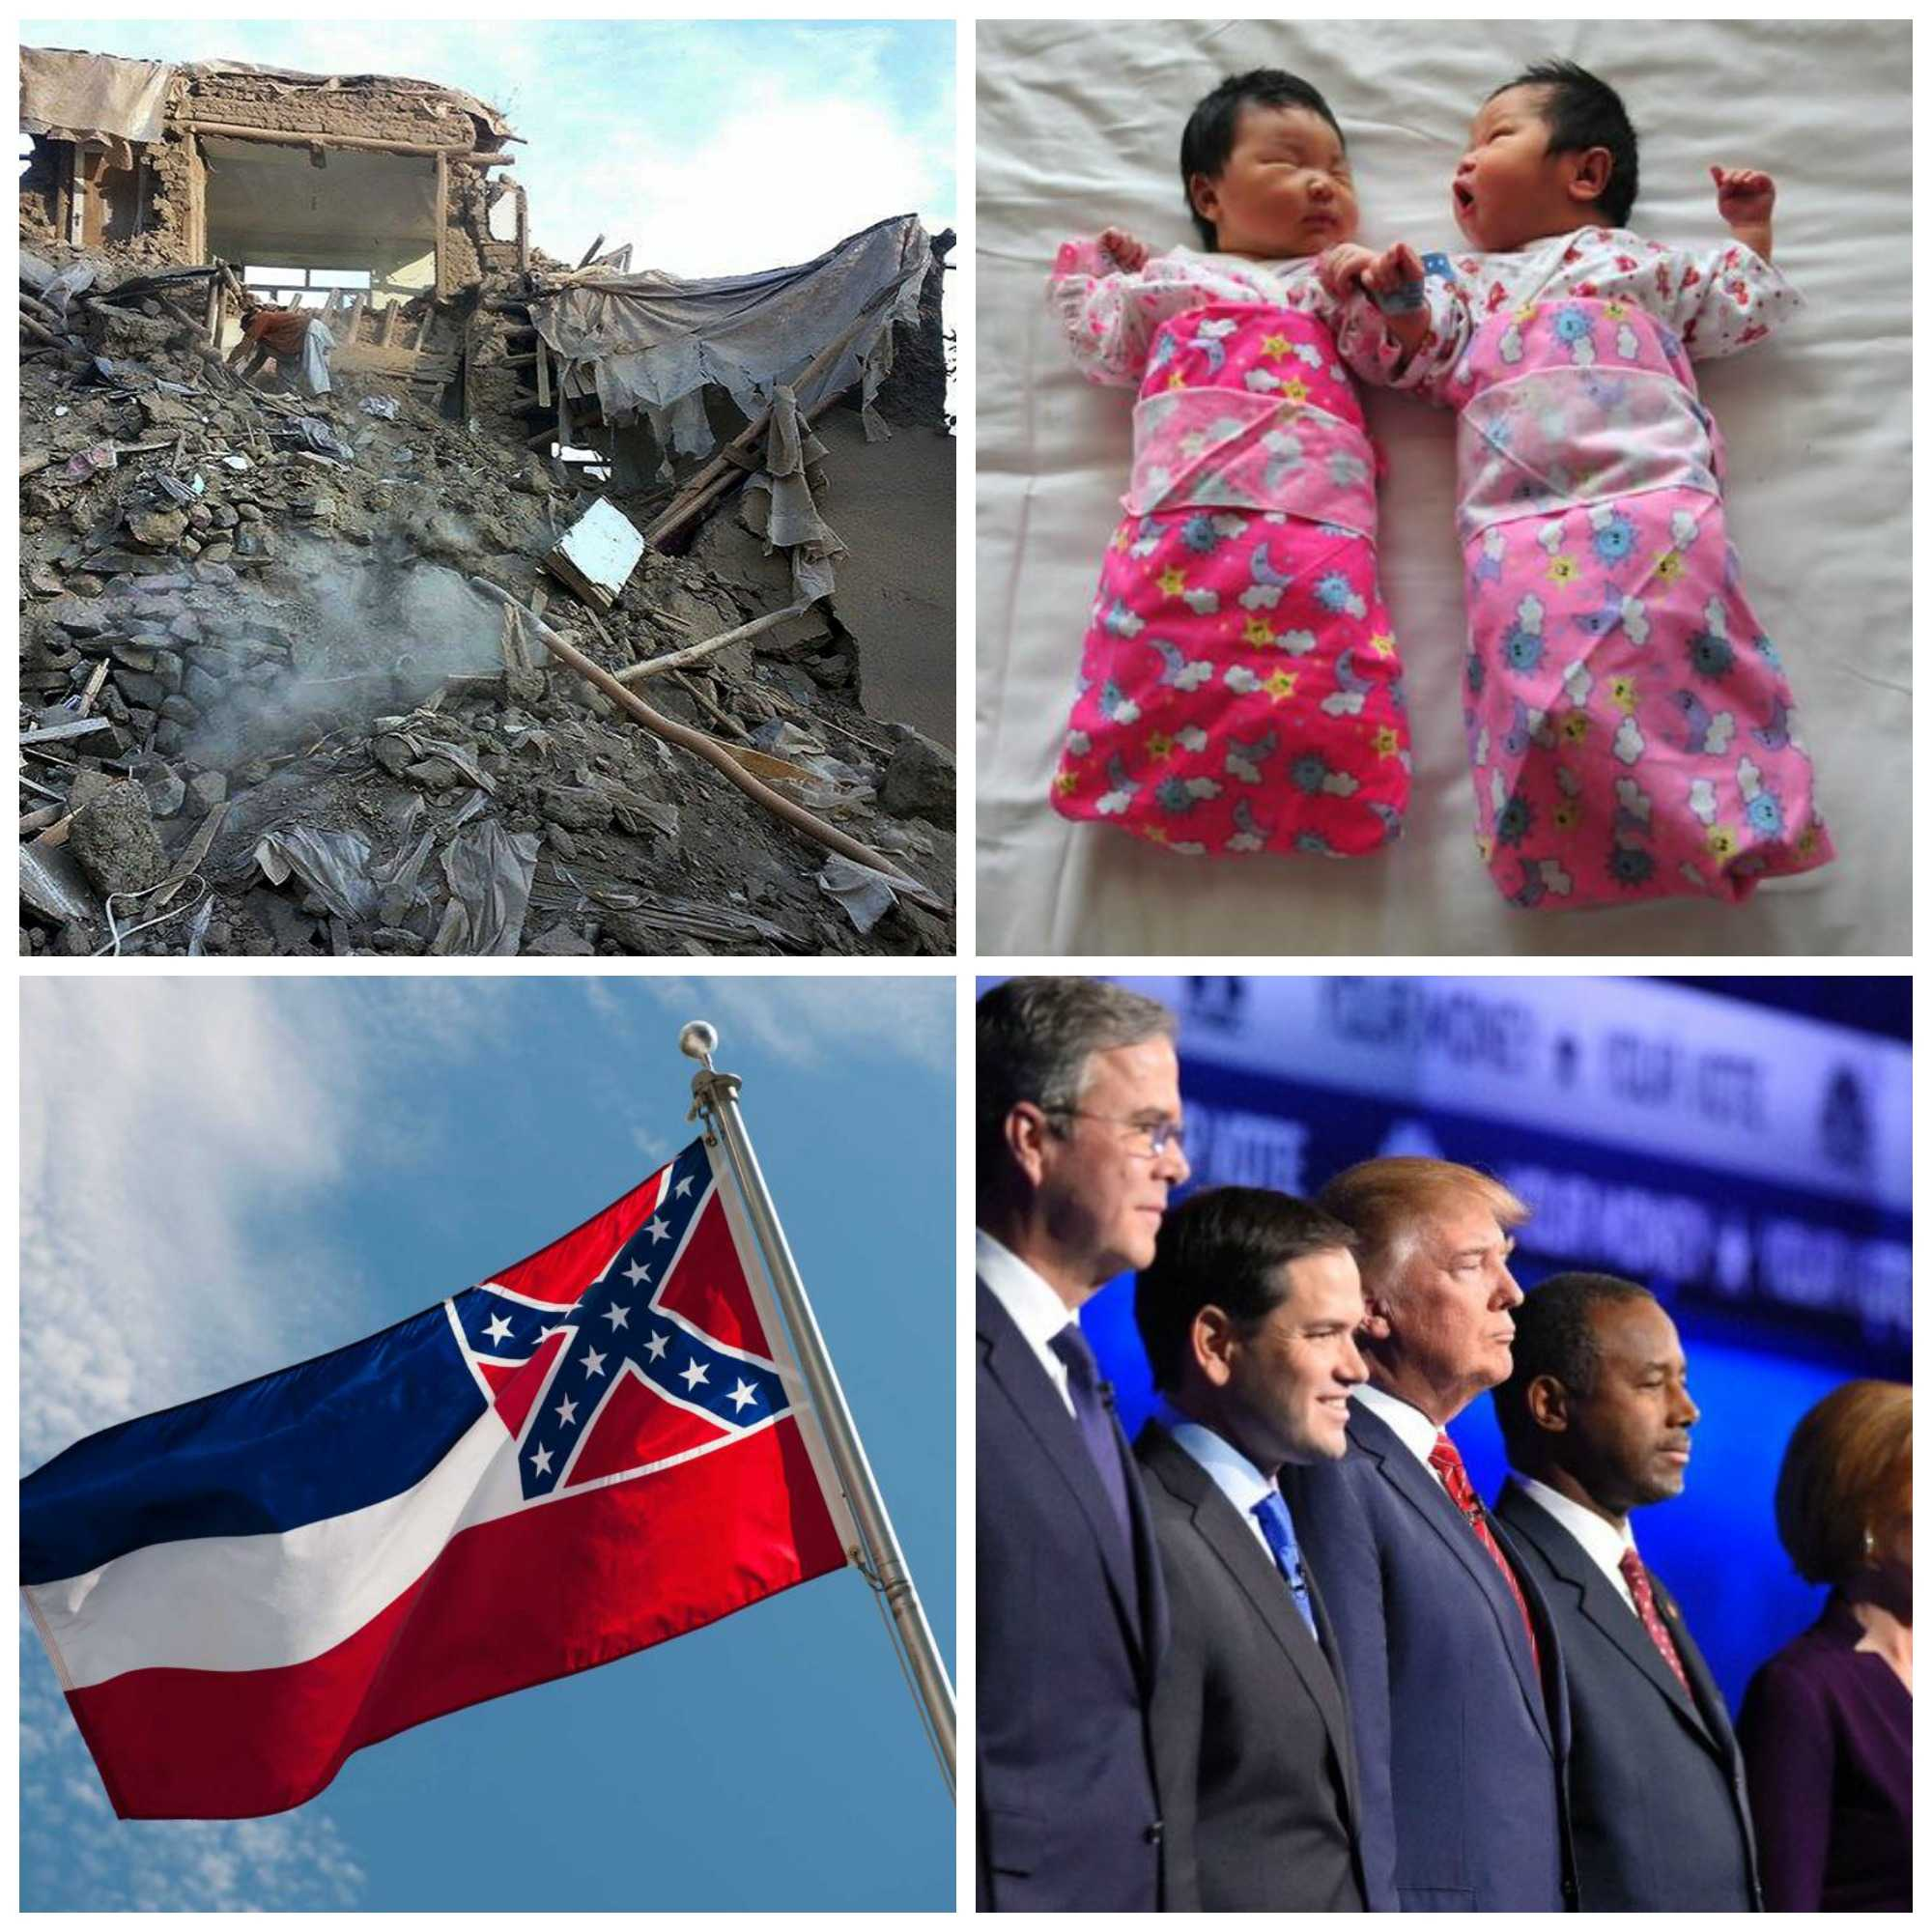 This week's news features the earthquake in Afghanistan, China's change in policy, Ole Miss flag controversy and the third GOP debate.